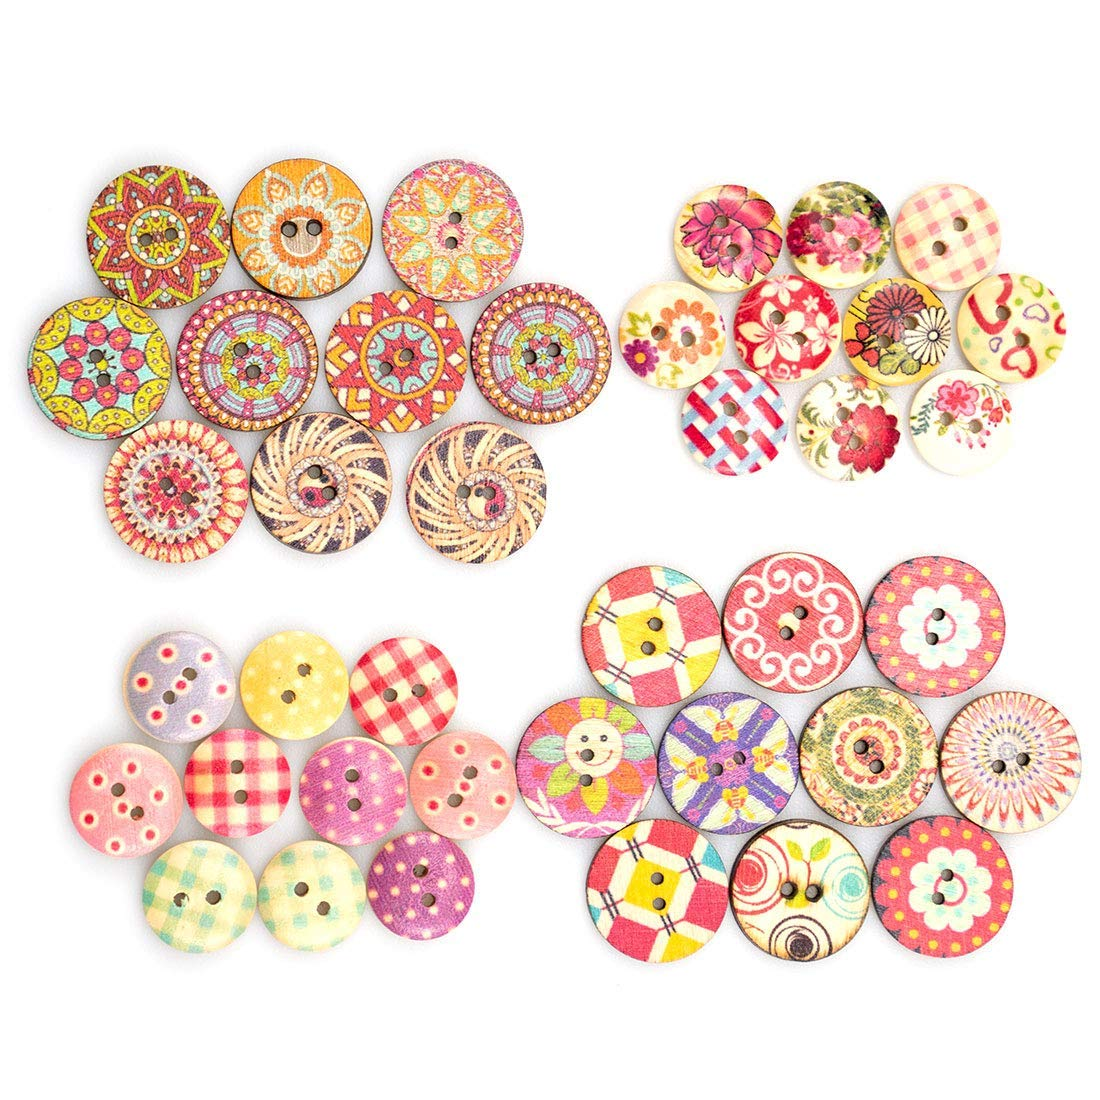 150 ASST RED AND BLACK WOOD /& RESIN BUTTONS /& EMBELLISHMENTS SEWING CRAFTS DIY